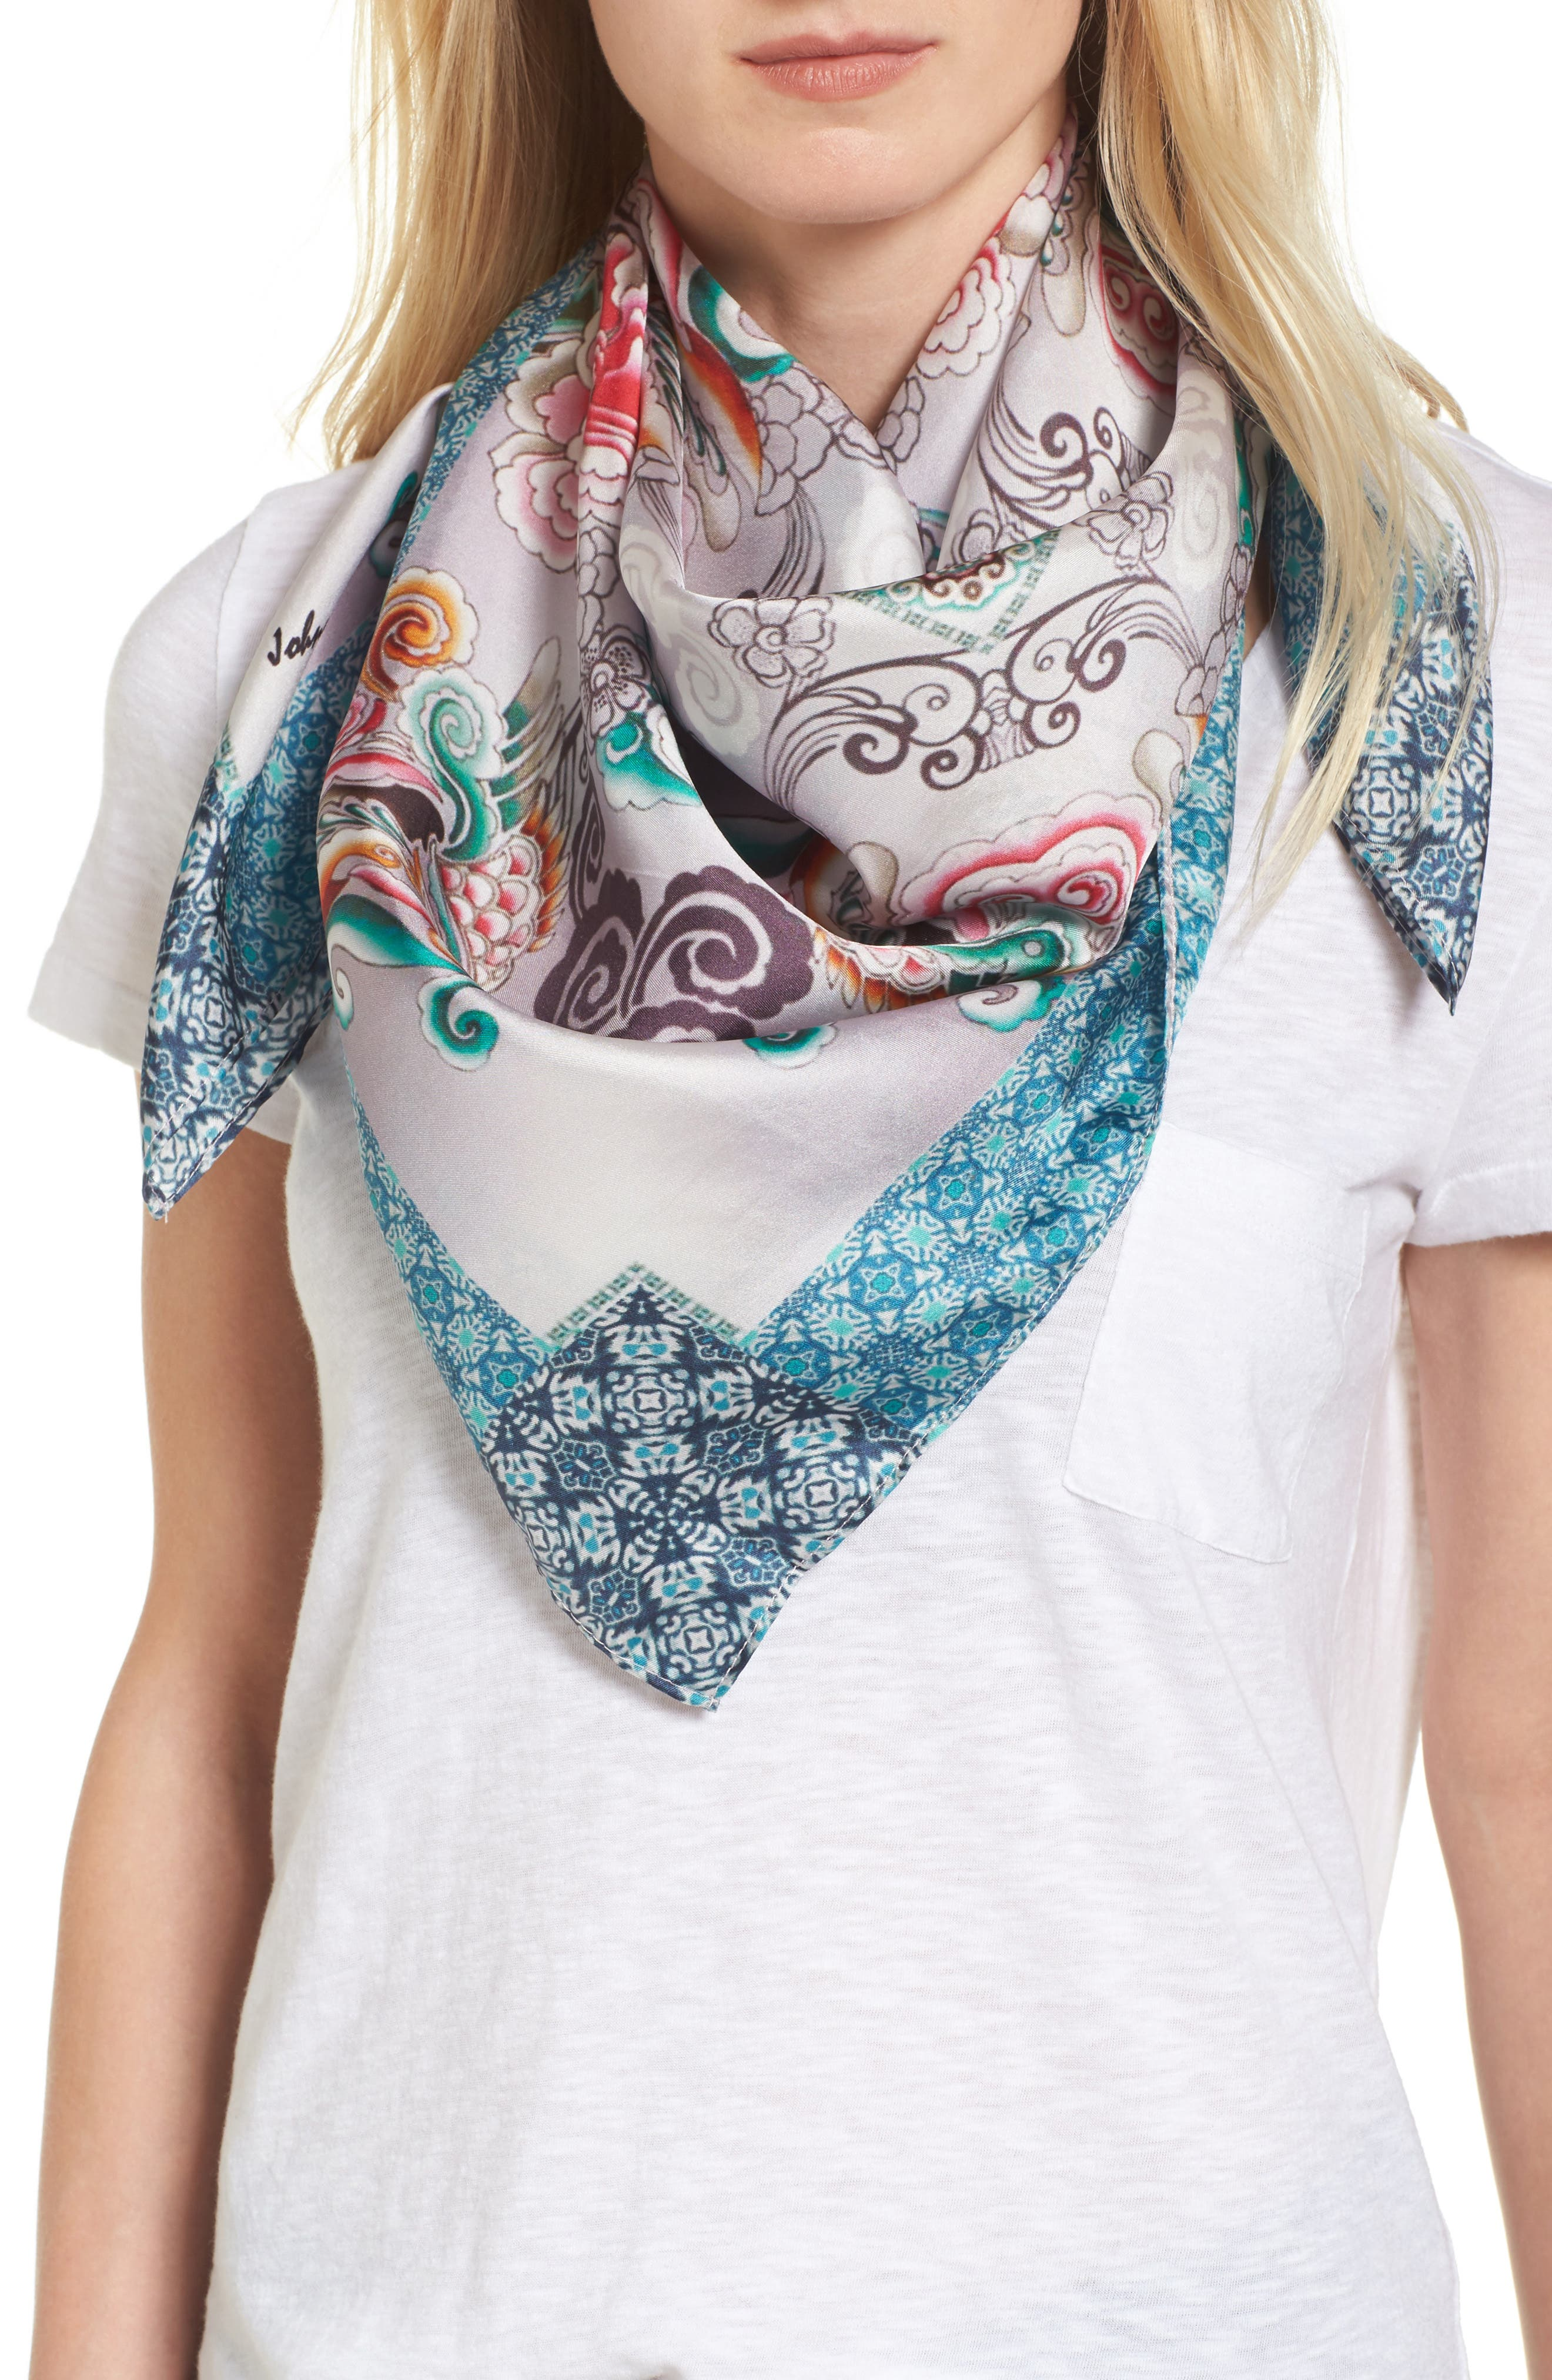 Saint Square Silk Scarf,                             Main thumbnail 1, color,                             400